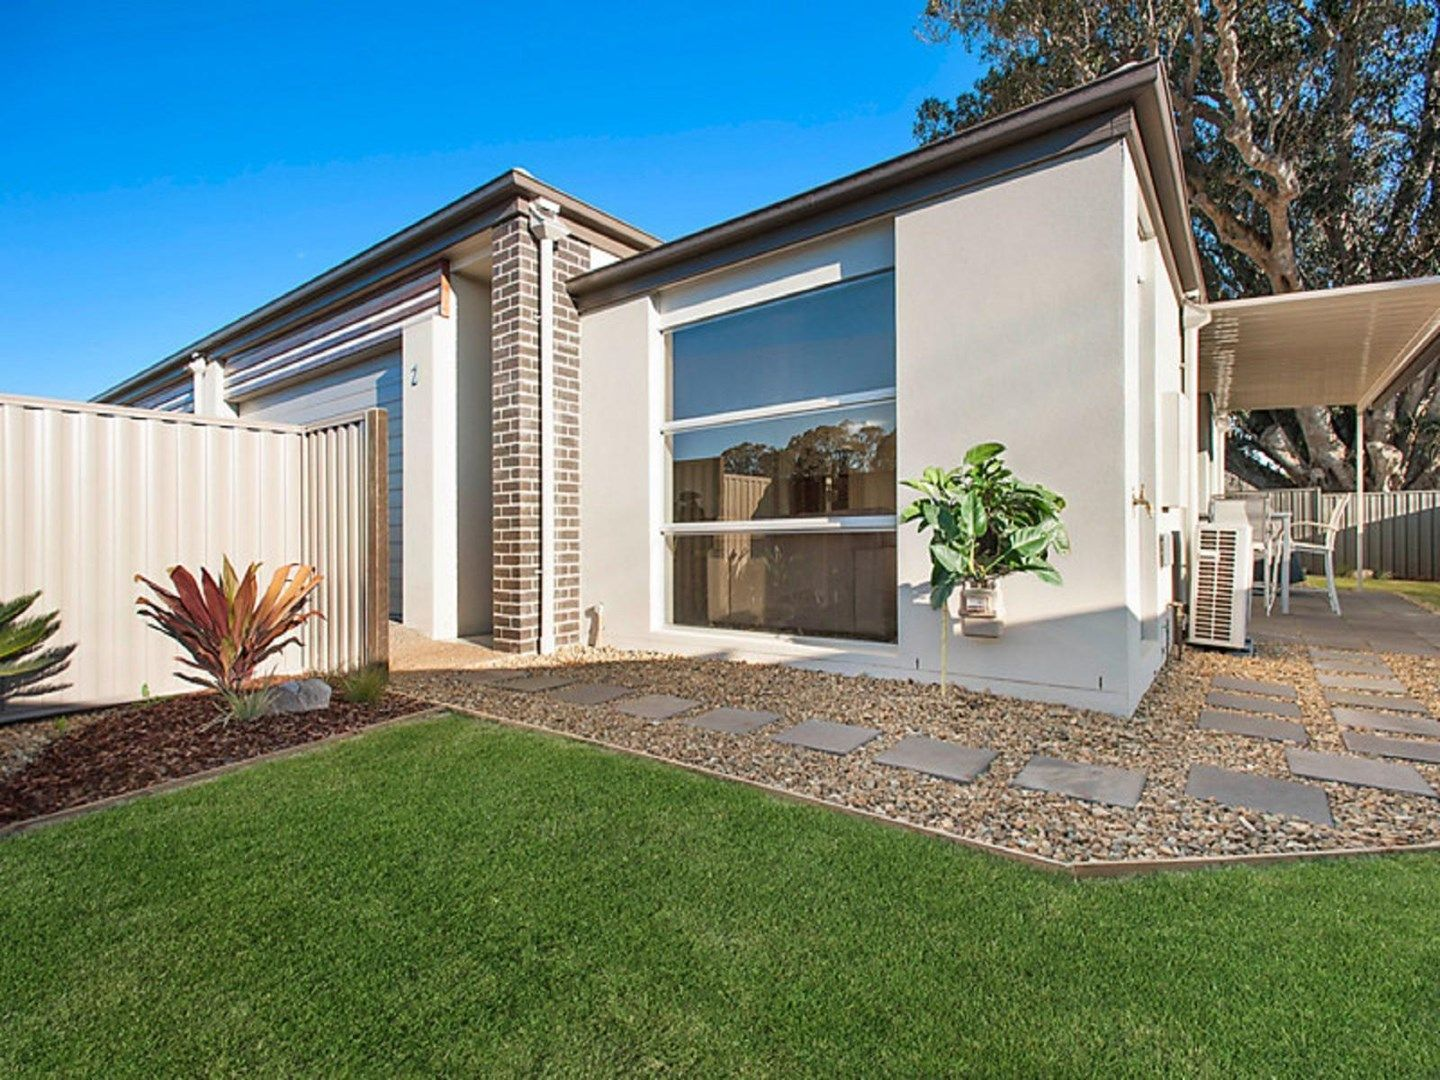 2/16 Argus Court, Middle Ridge QLD 4350, Image 0